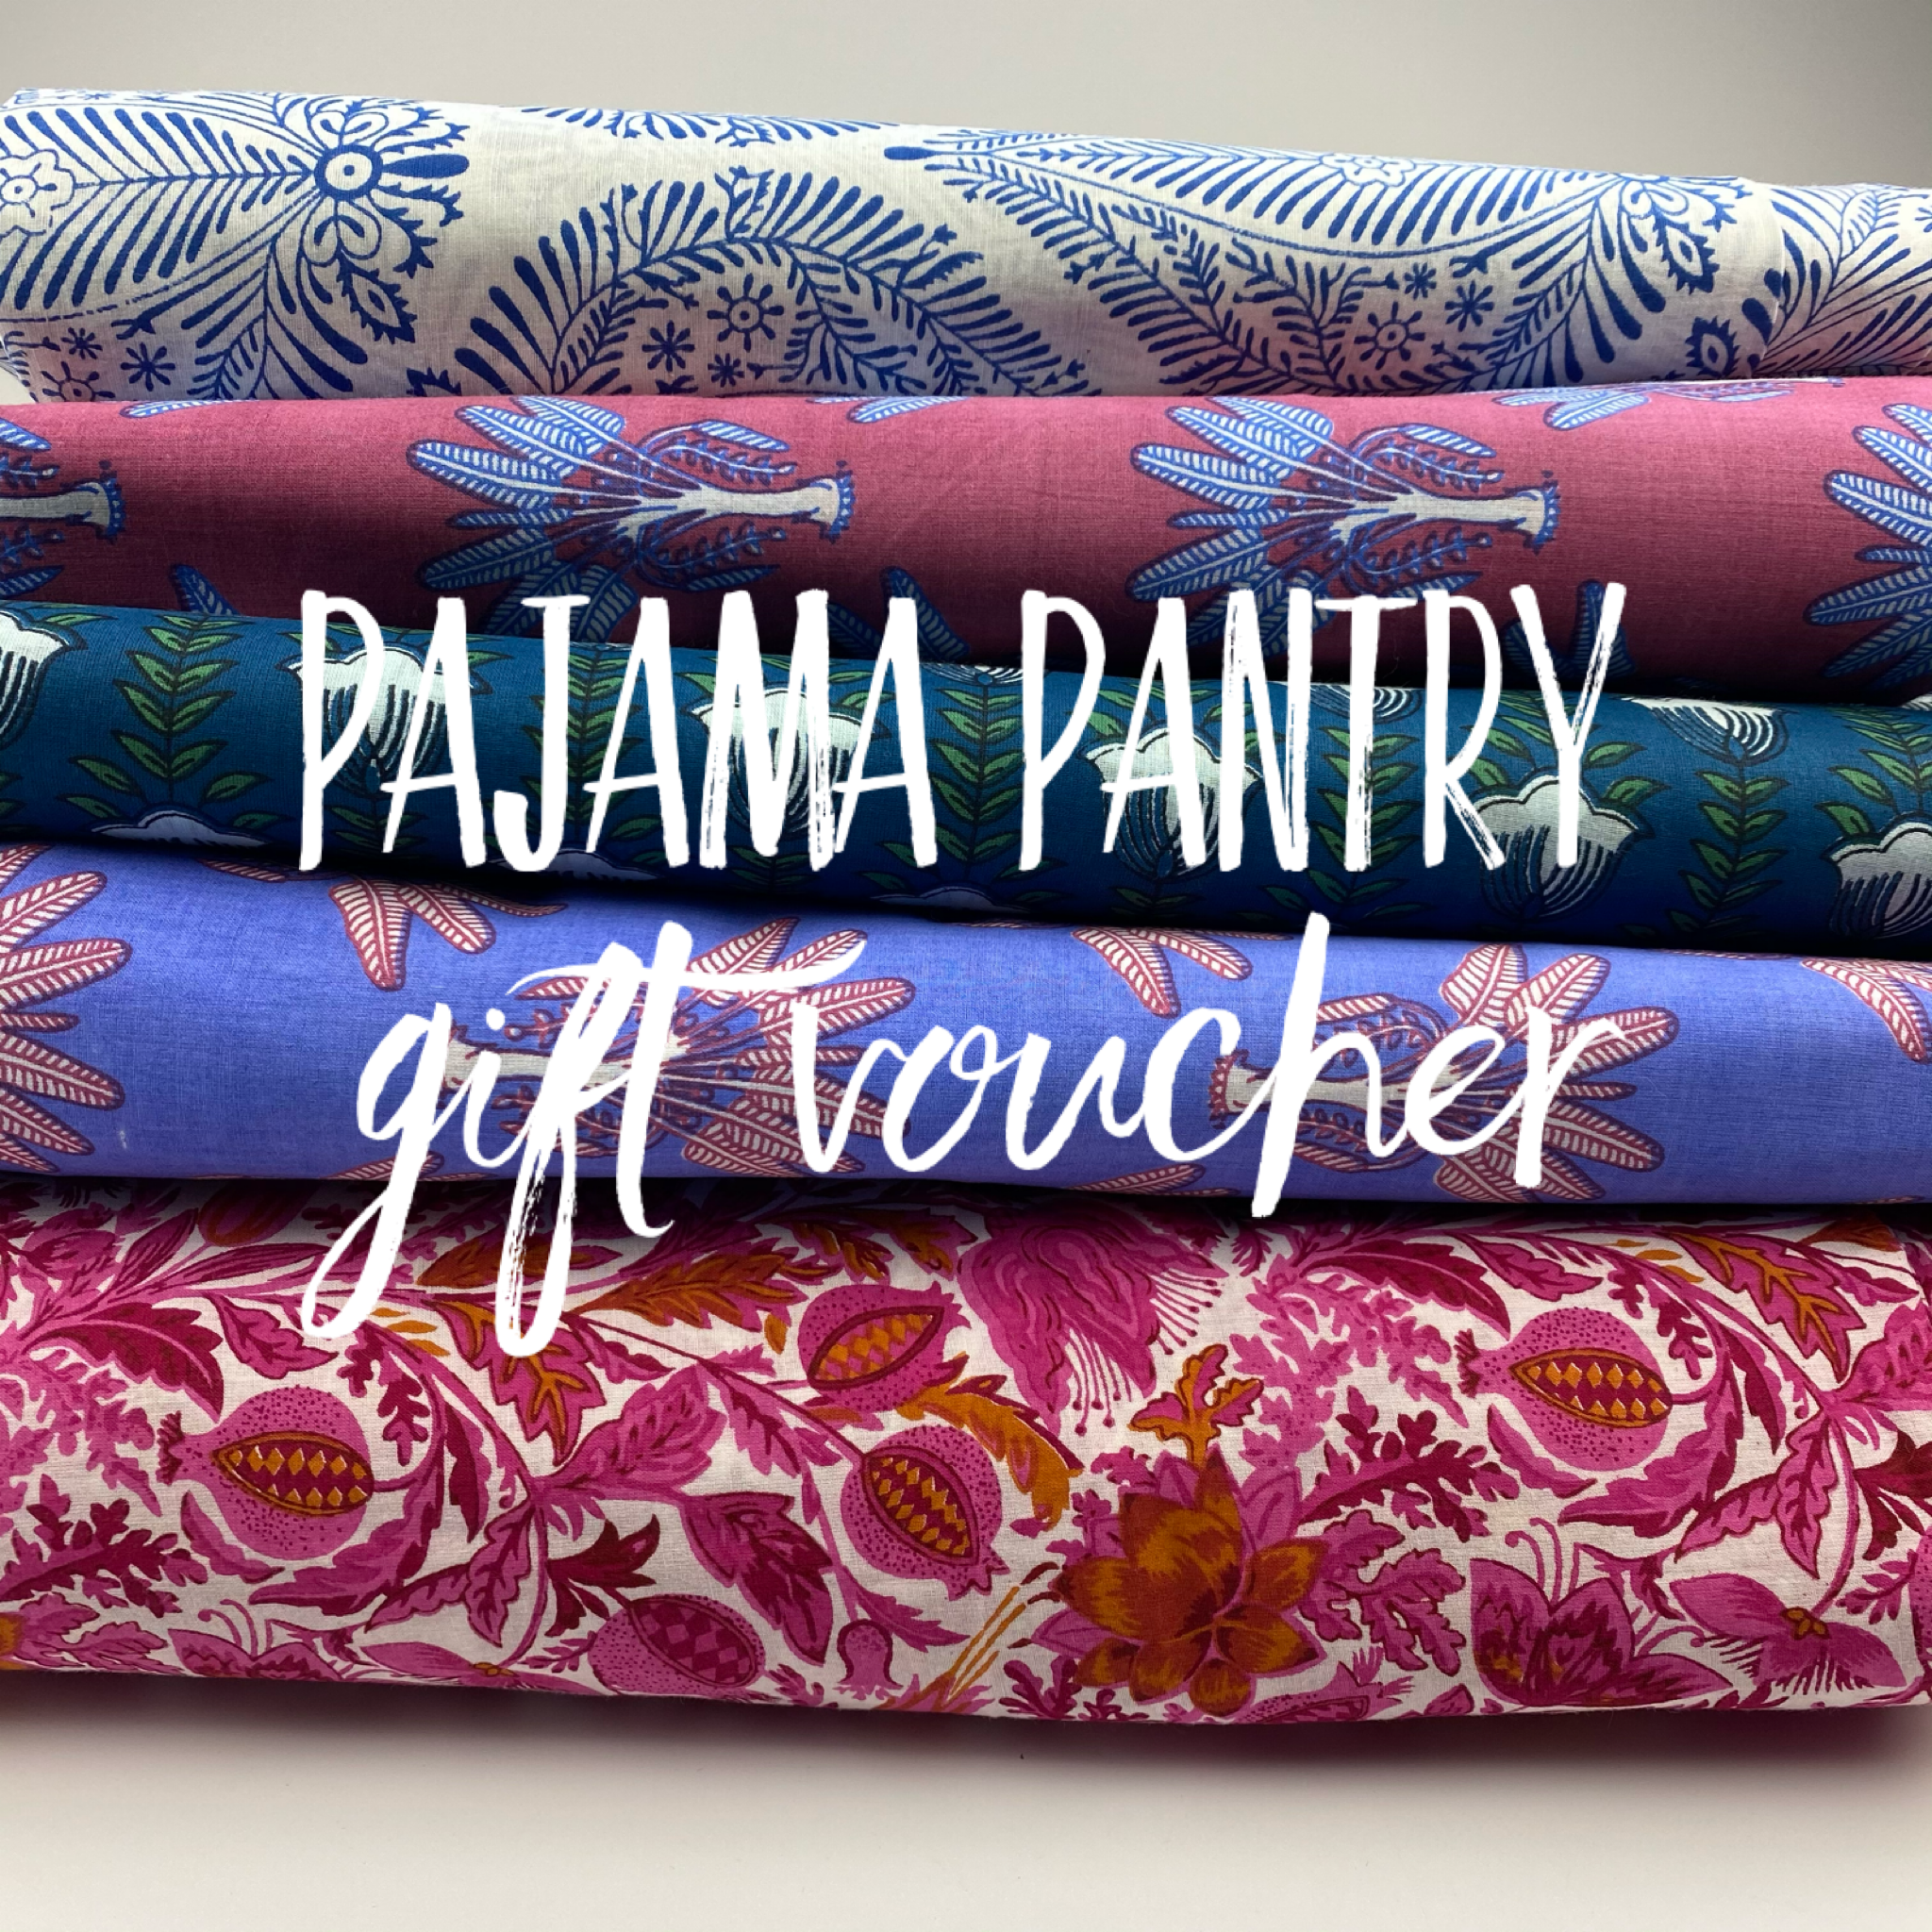 Selection of different pajama designs with text 'Pajama Pantry gift voucher'